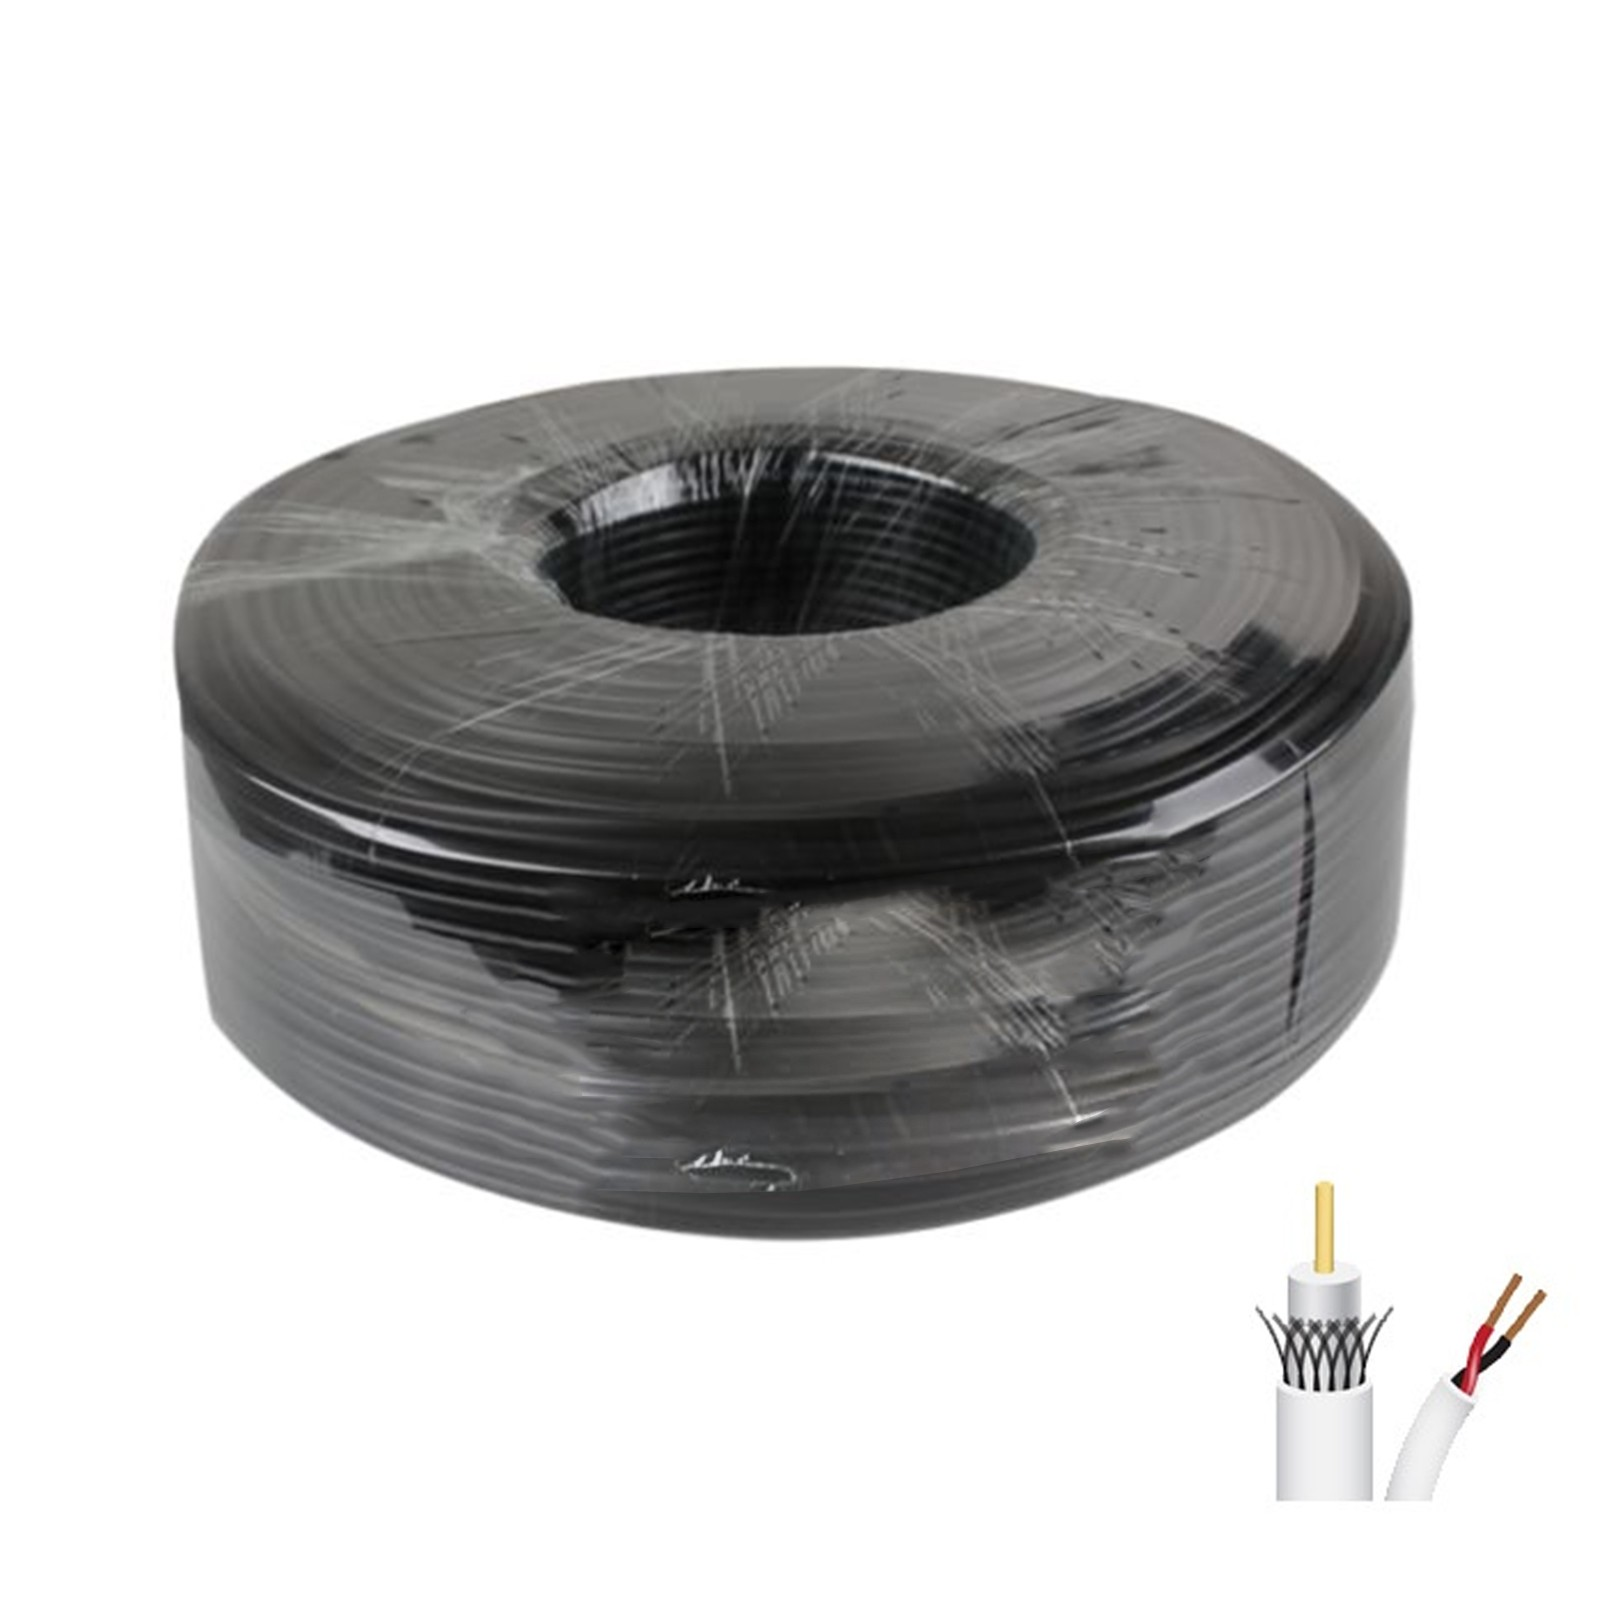 100MT+PRG59CCS - RG59 Coaxial cable skein 100MT ccs + Power - prices